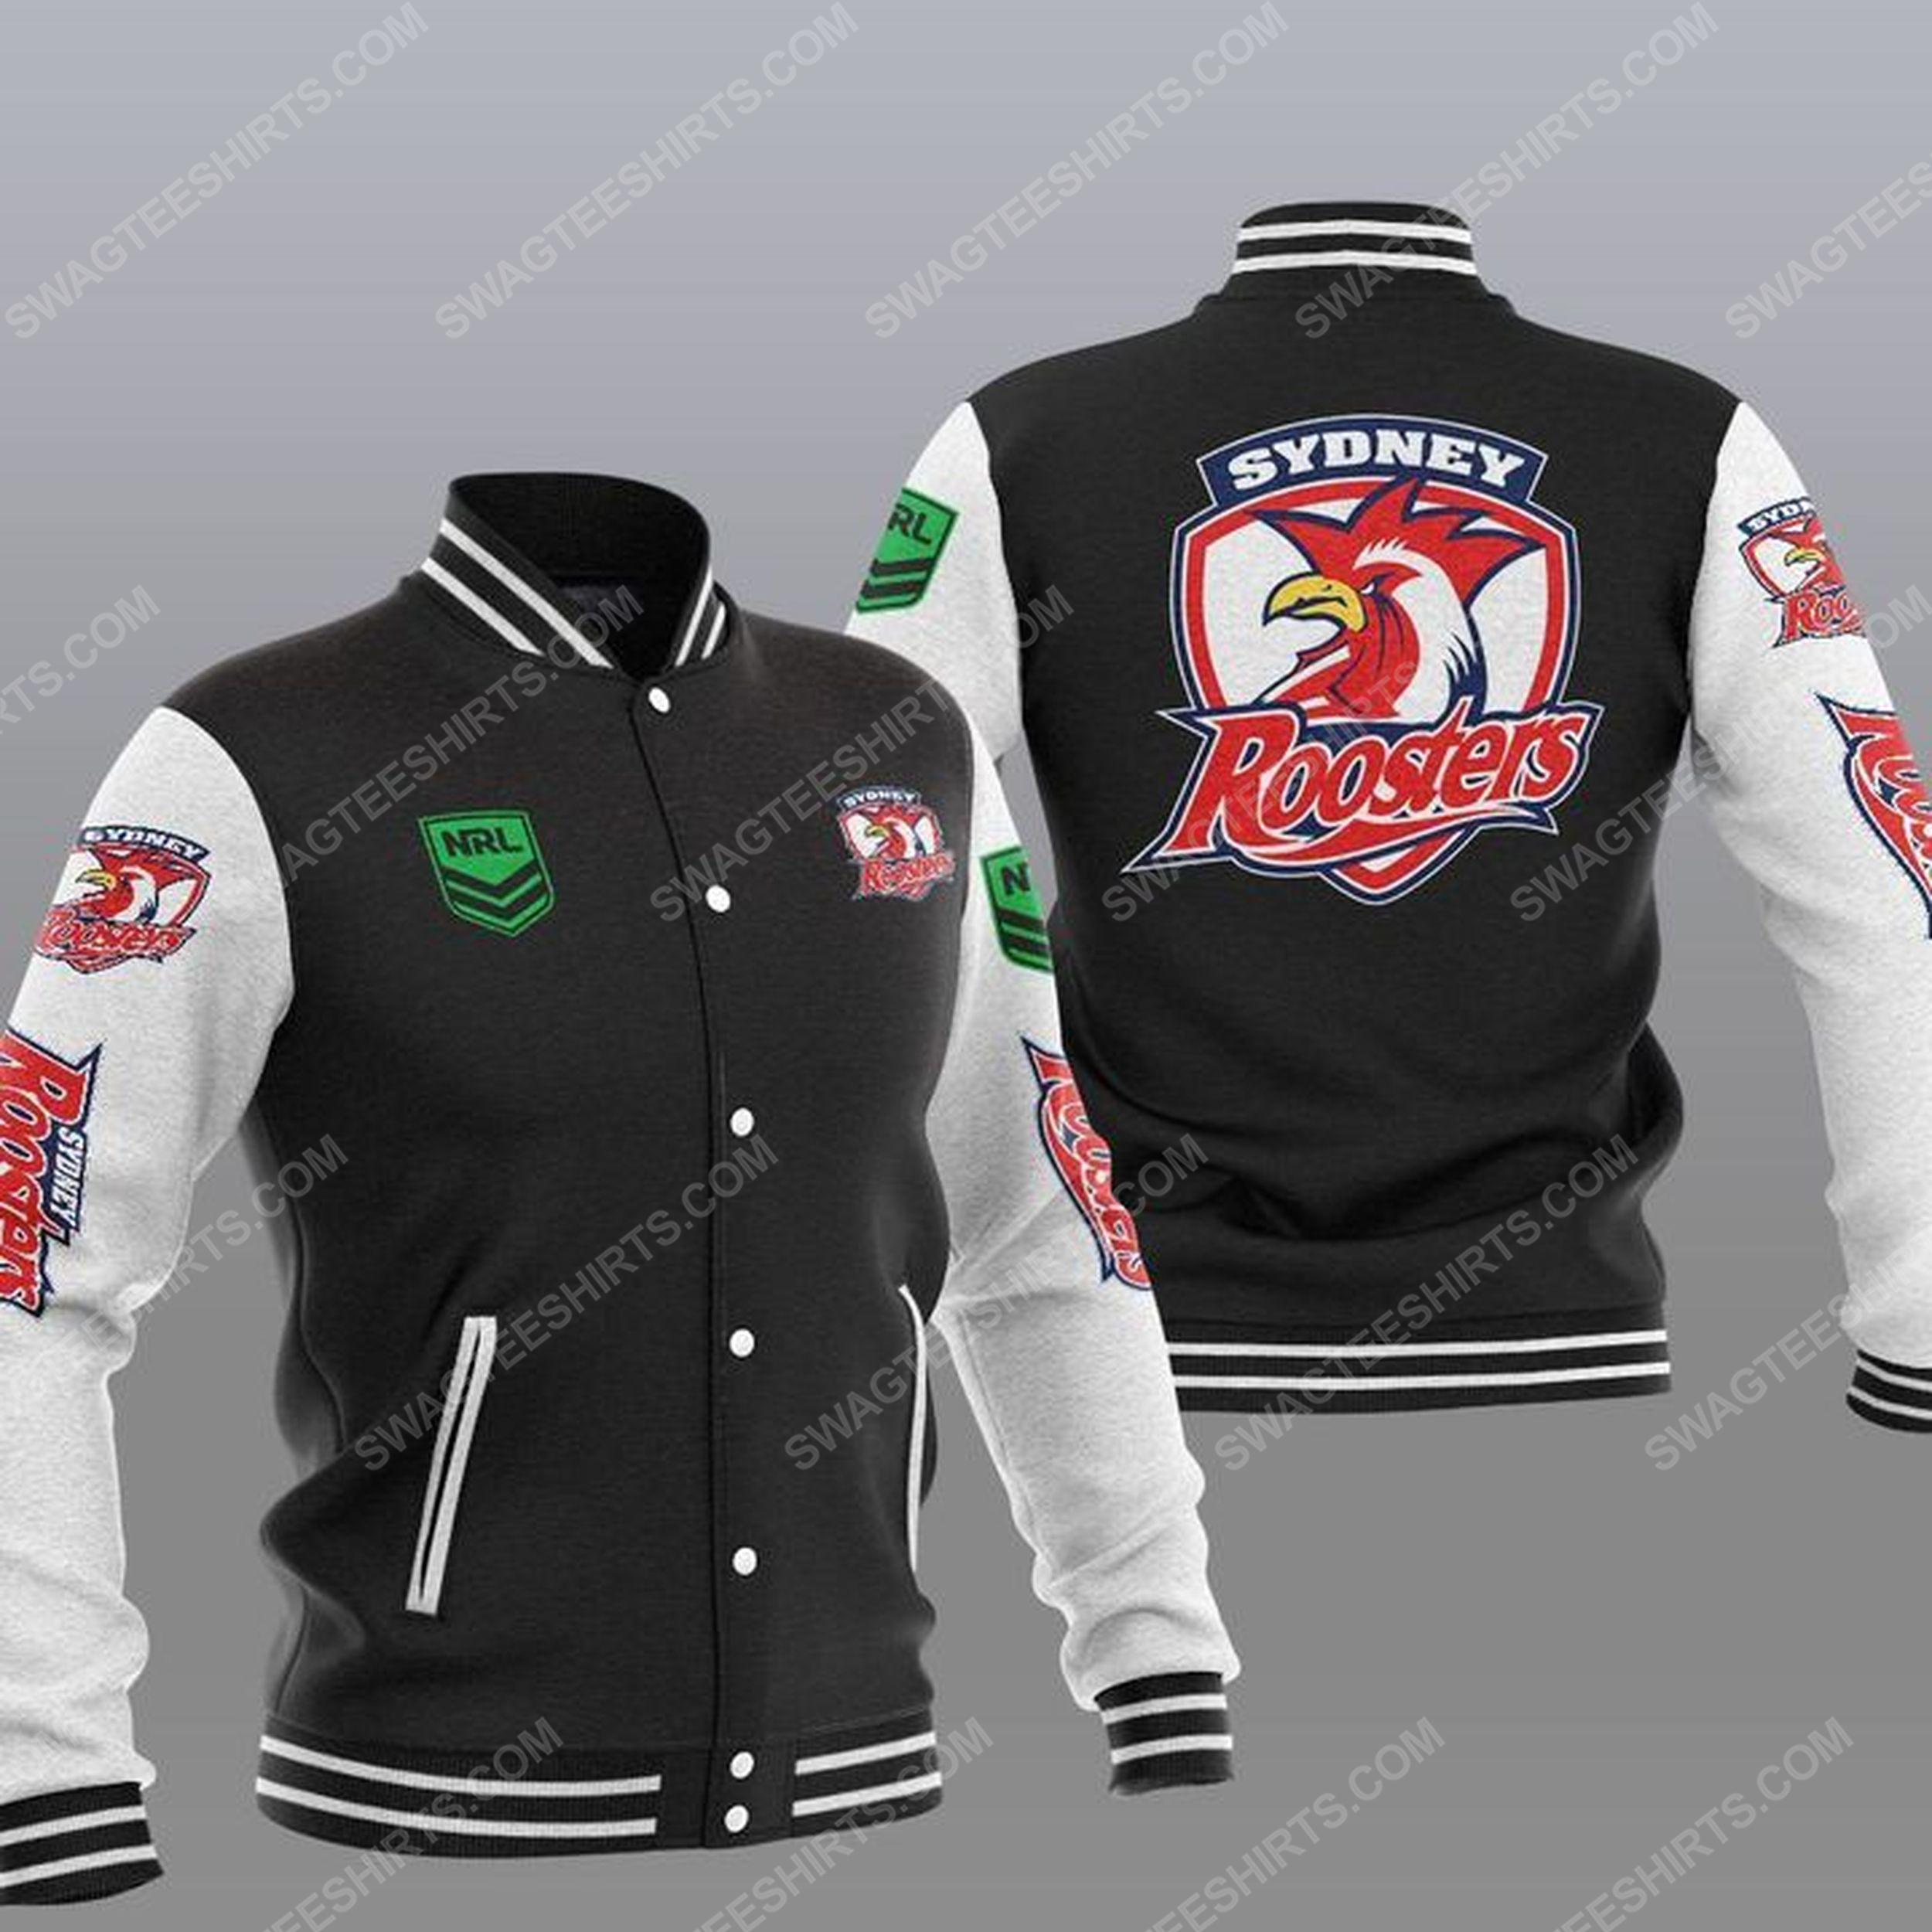 The sydney roosters nfl all over print baseball jacket - black 1